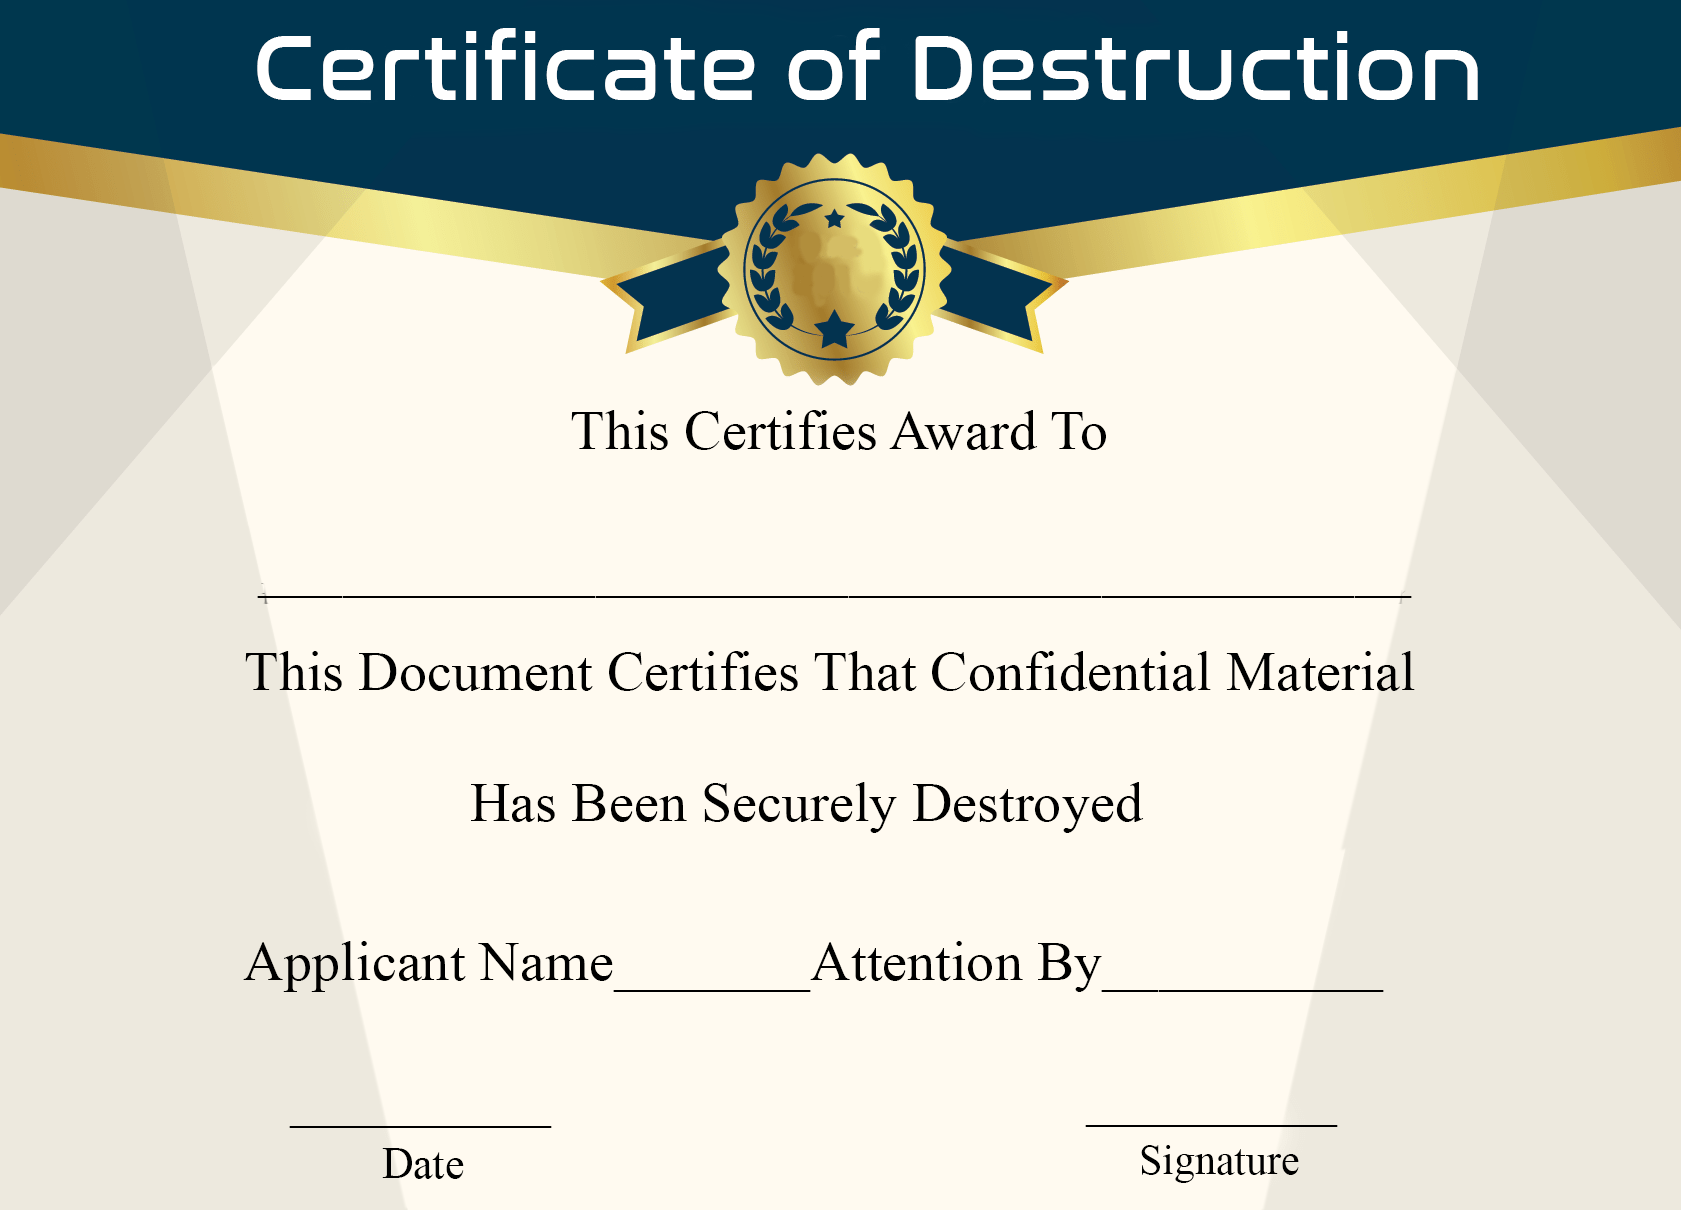 Certificate of Destruction Sample